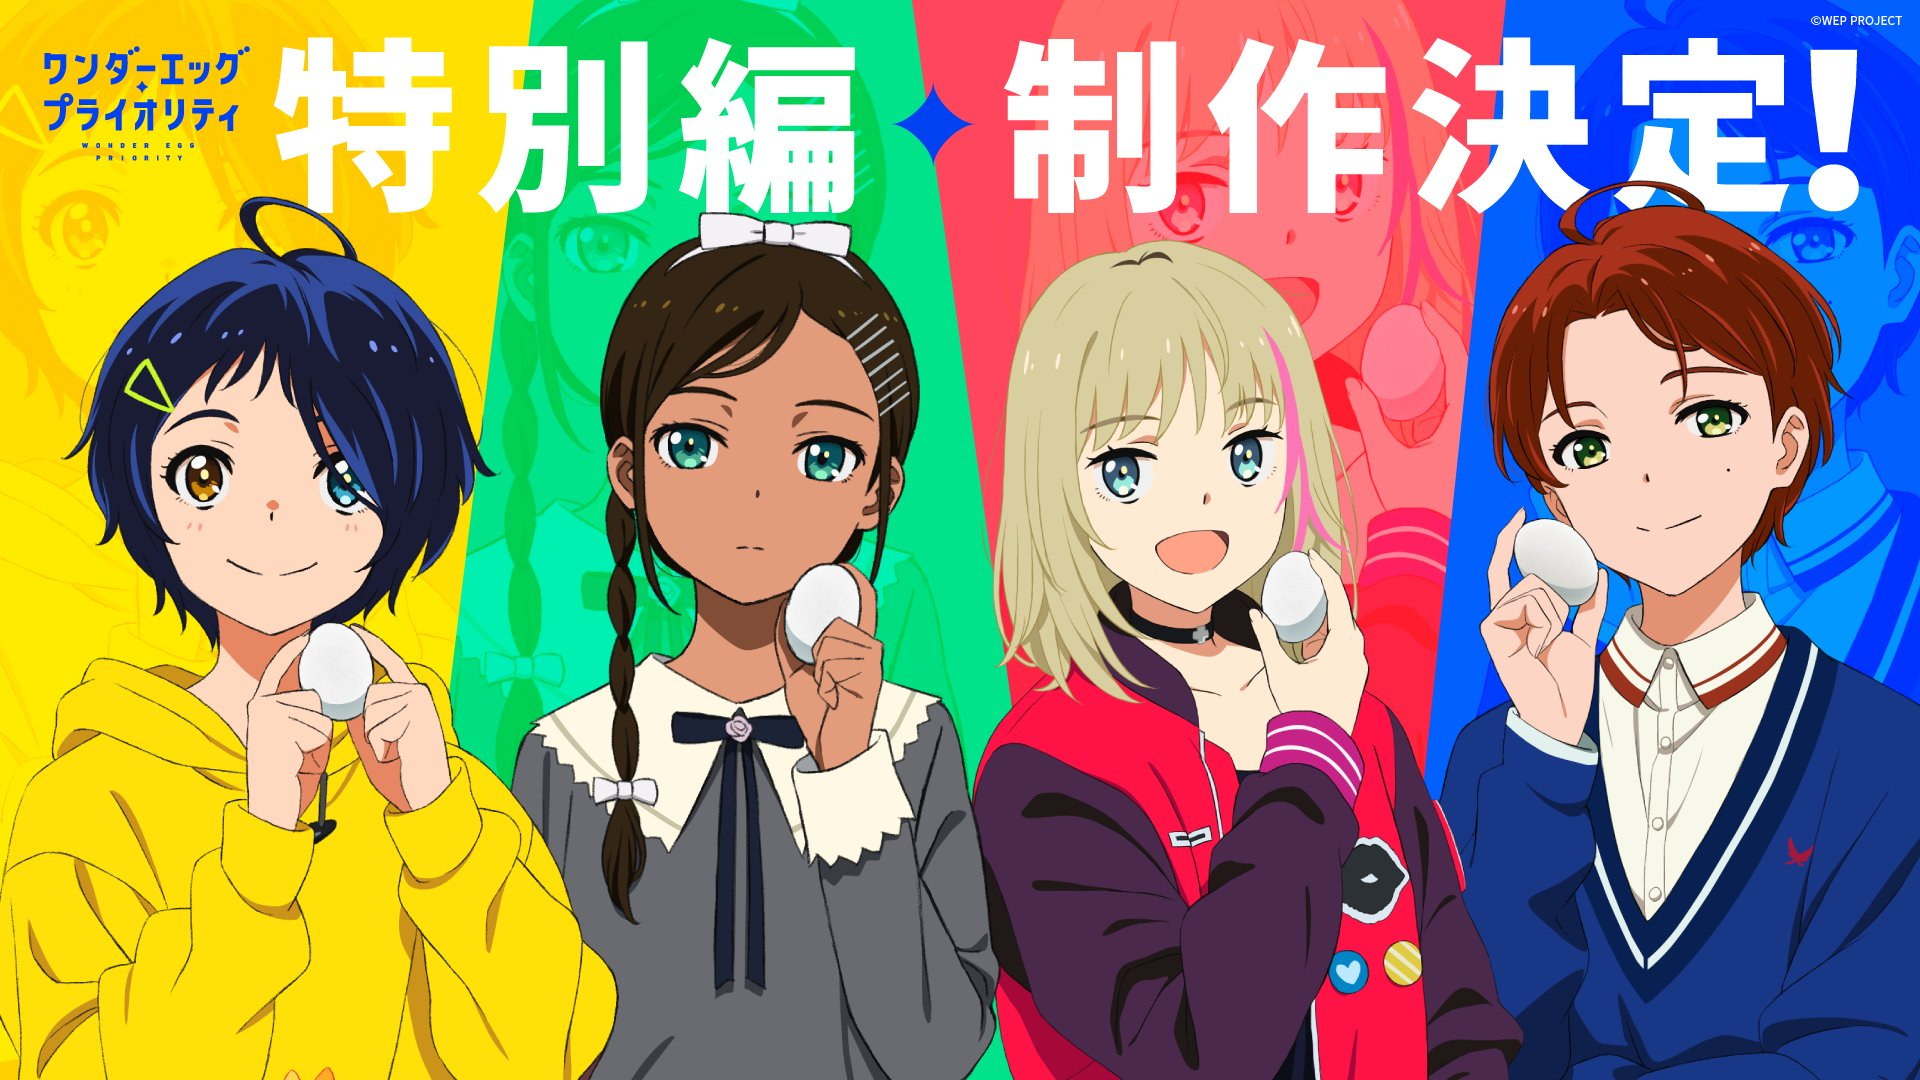 A promotional image for the special episode of the Wonder Egg Priority TV anime, featuring the main characters posing with eggs.